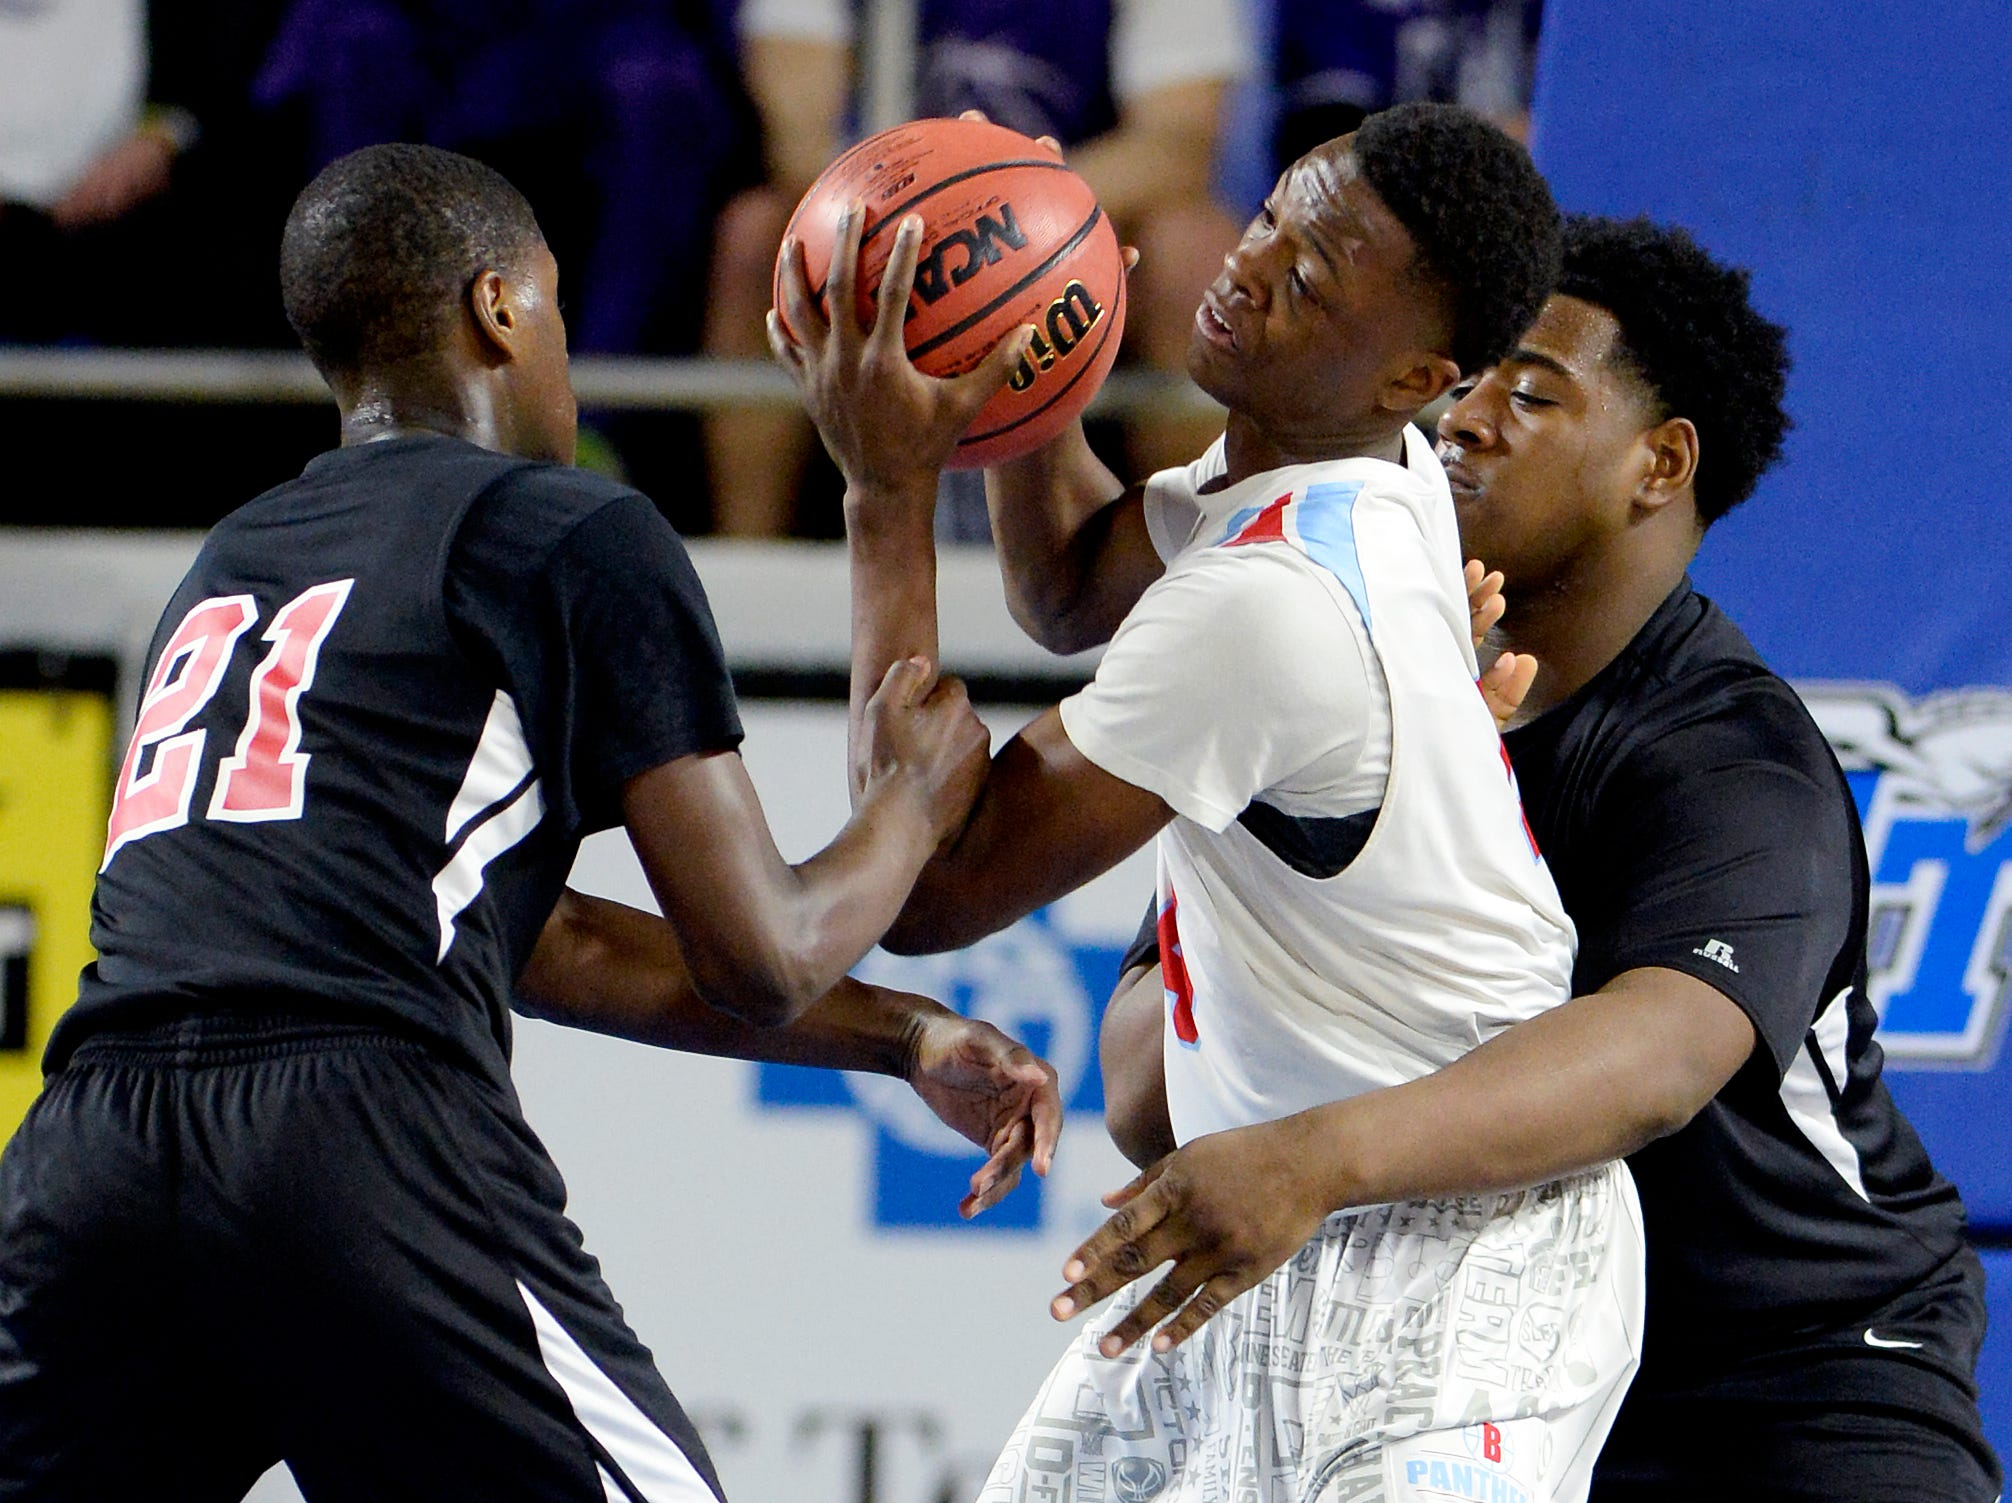 Brainerd forward Laderron Freeman, center, is pressured by Pearl-Cohn guard Antonio Anthony (21) forward Wiiliam Griffin (52) during the second half of an Class AA boys' state basketball quarterfinal game against Brainerd Wednesday, March 13, 2019, in Murfreesboro, Tenn. Brainerd won 76-73.